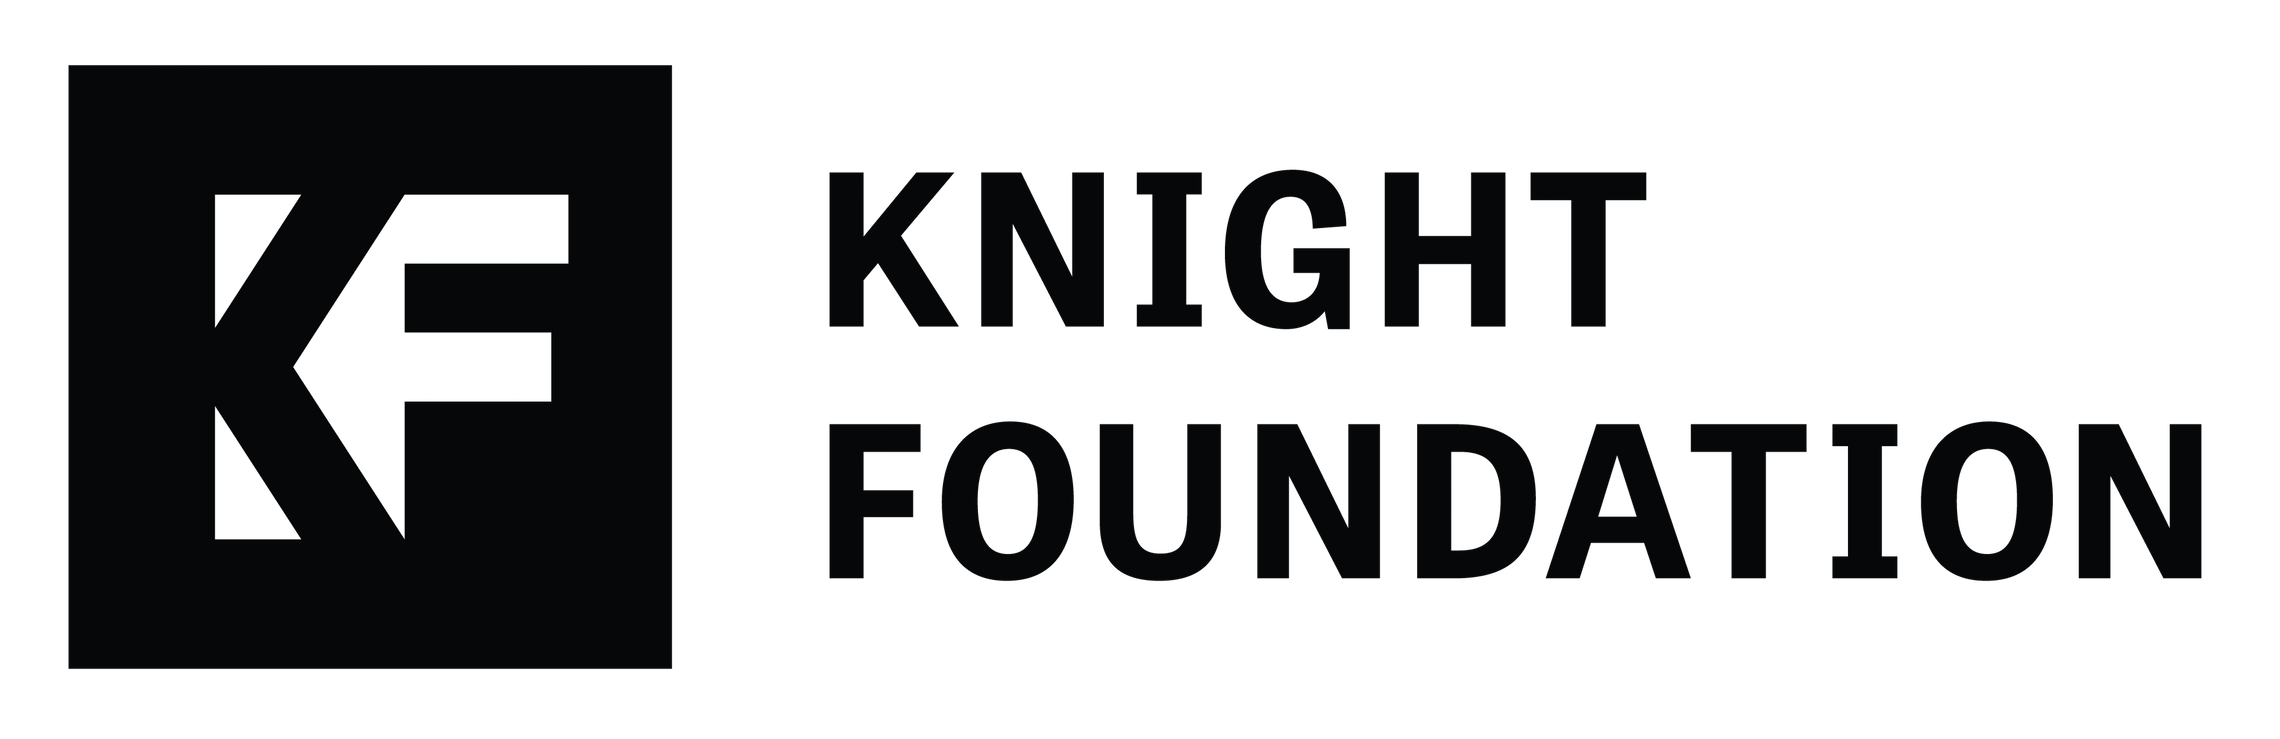 KF_Logotype_Icon-and-Stacked-Name.png